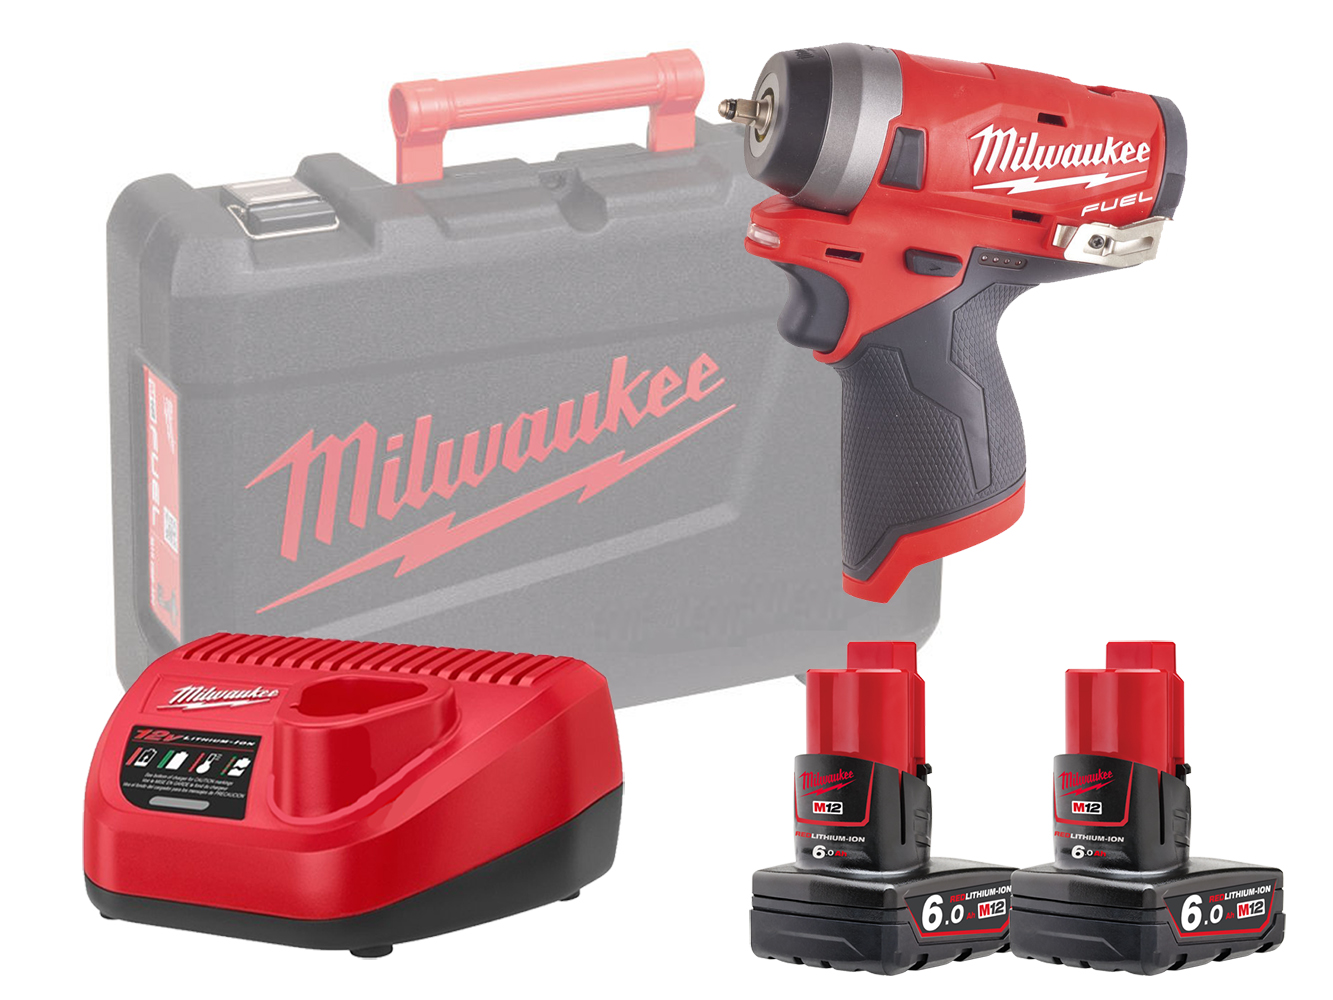 "MILWAUKEE 12V FUEL COMPACT IMPACT WRENCH 1/4"" - M12FIW14 - 6.0AH PACK"